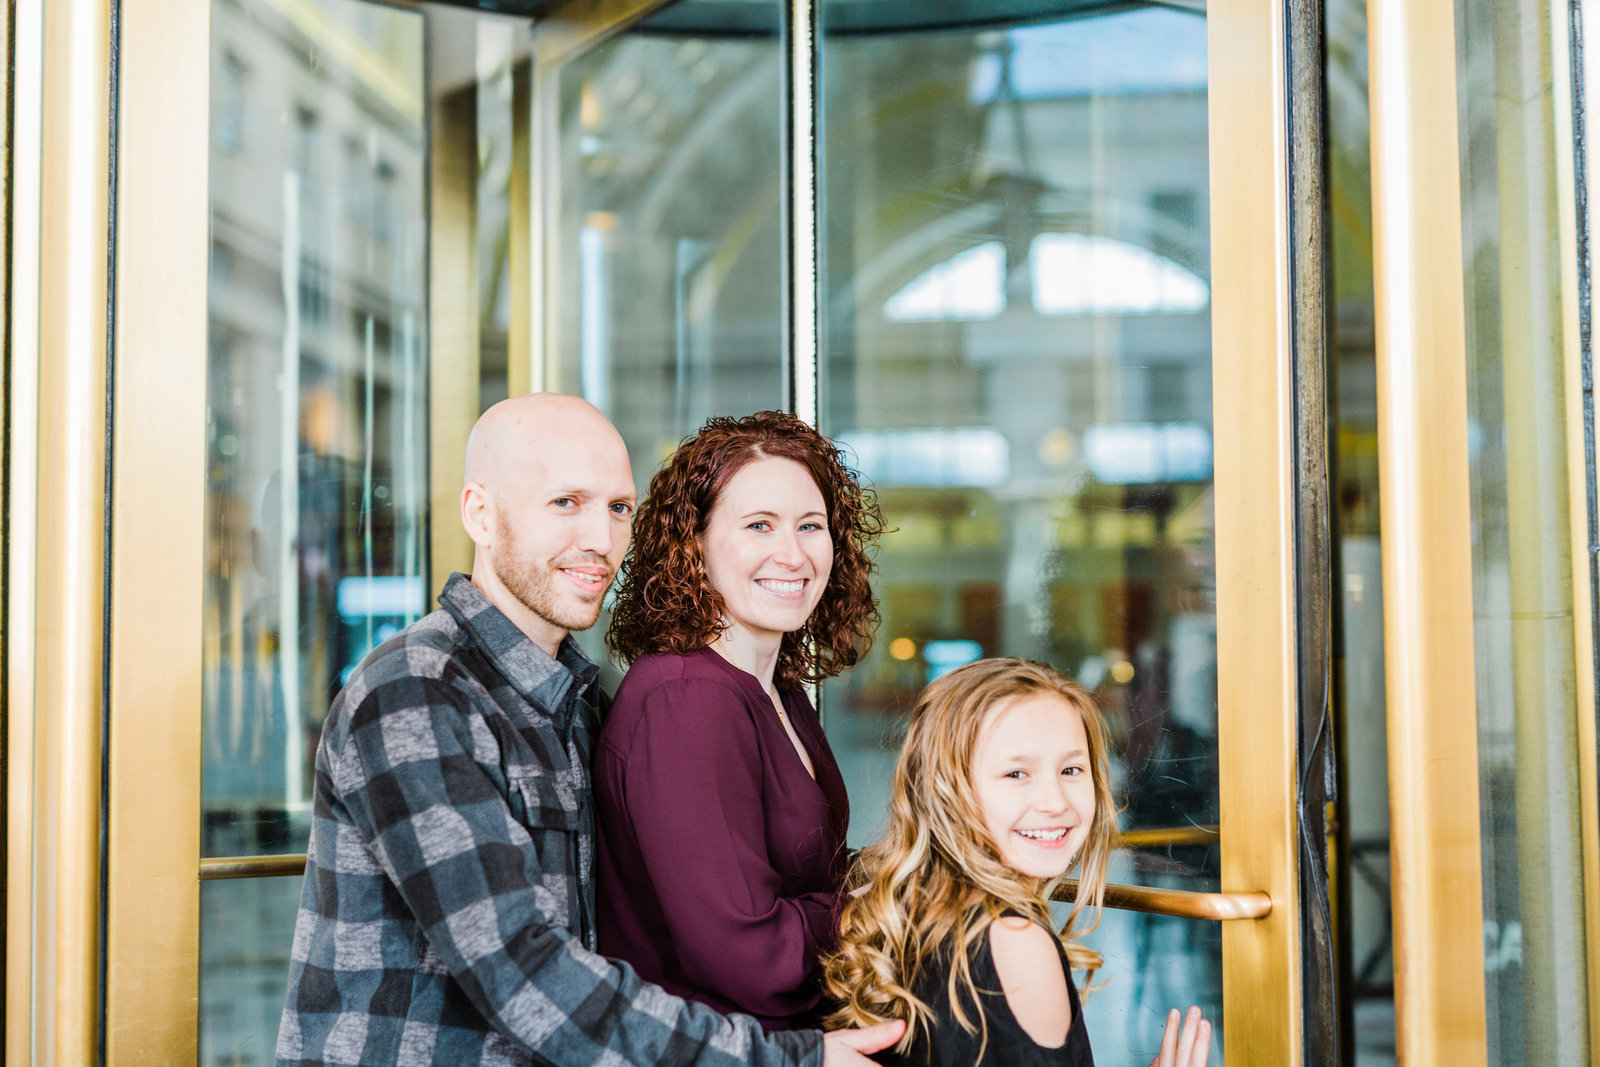 Union-Station-DC-Family-Photographer-Understitch-Photography-46